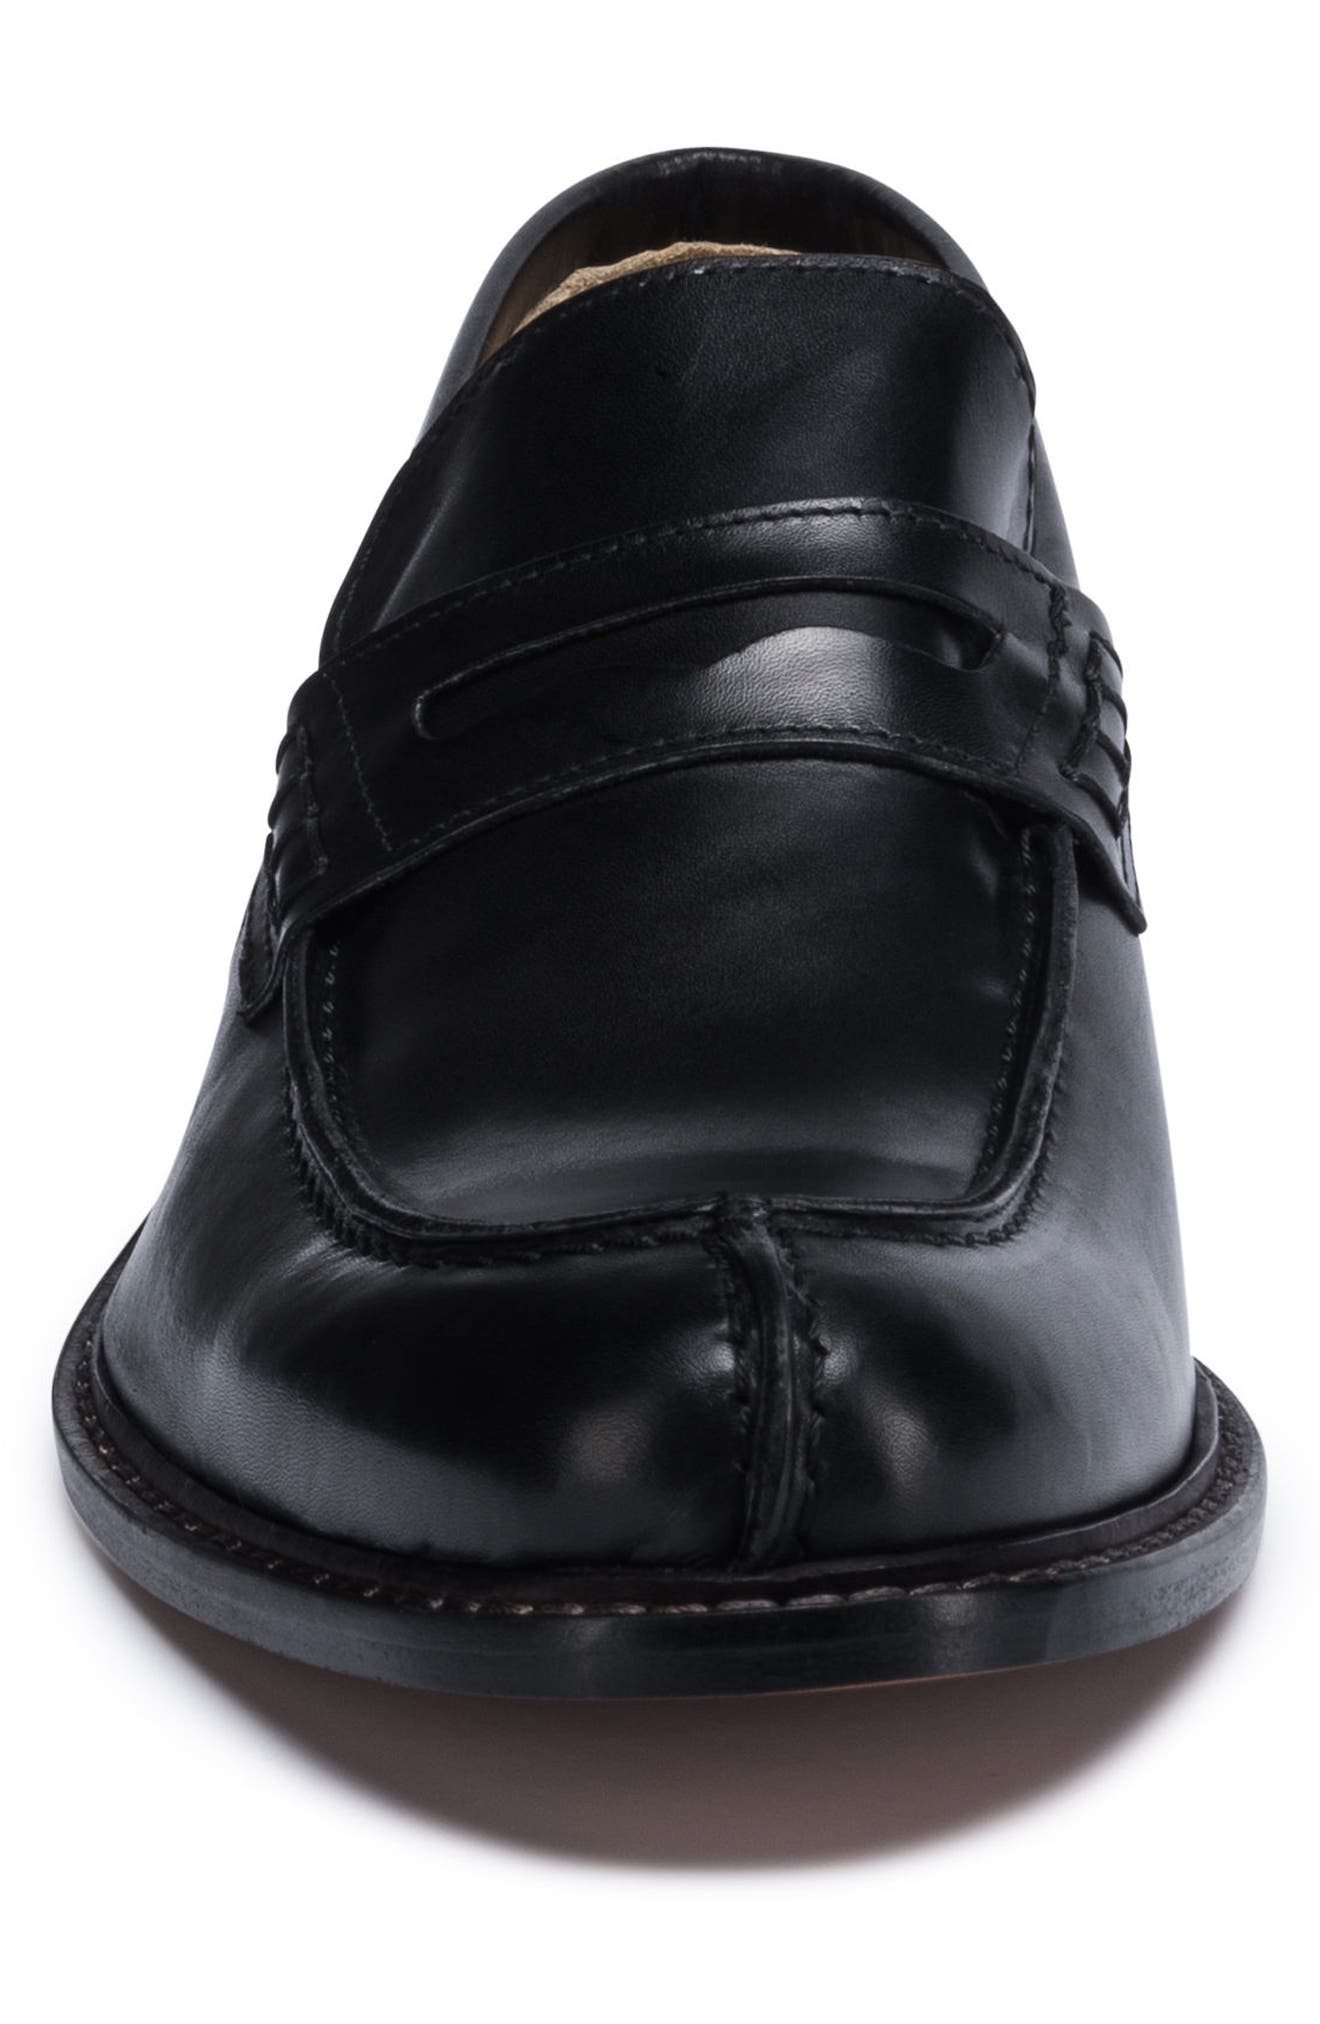 Apron Toe Penny Loafer,                             Alternate thumbnail 4, color,                             Nero Leather